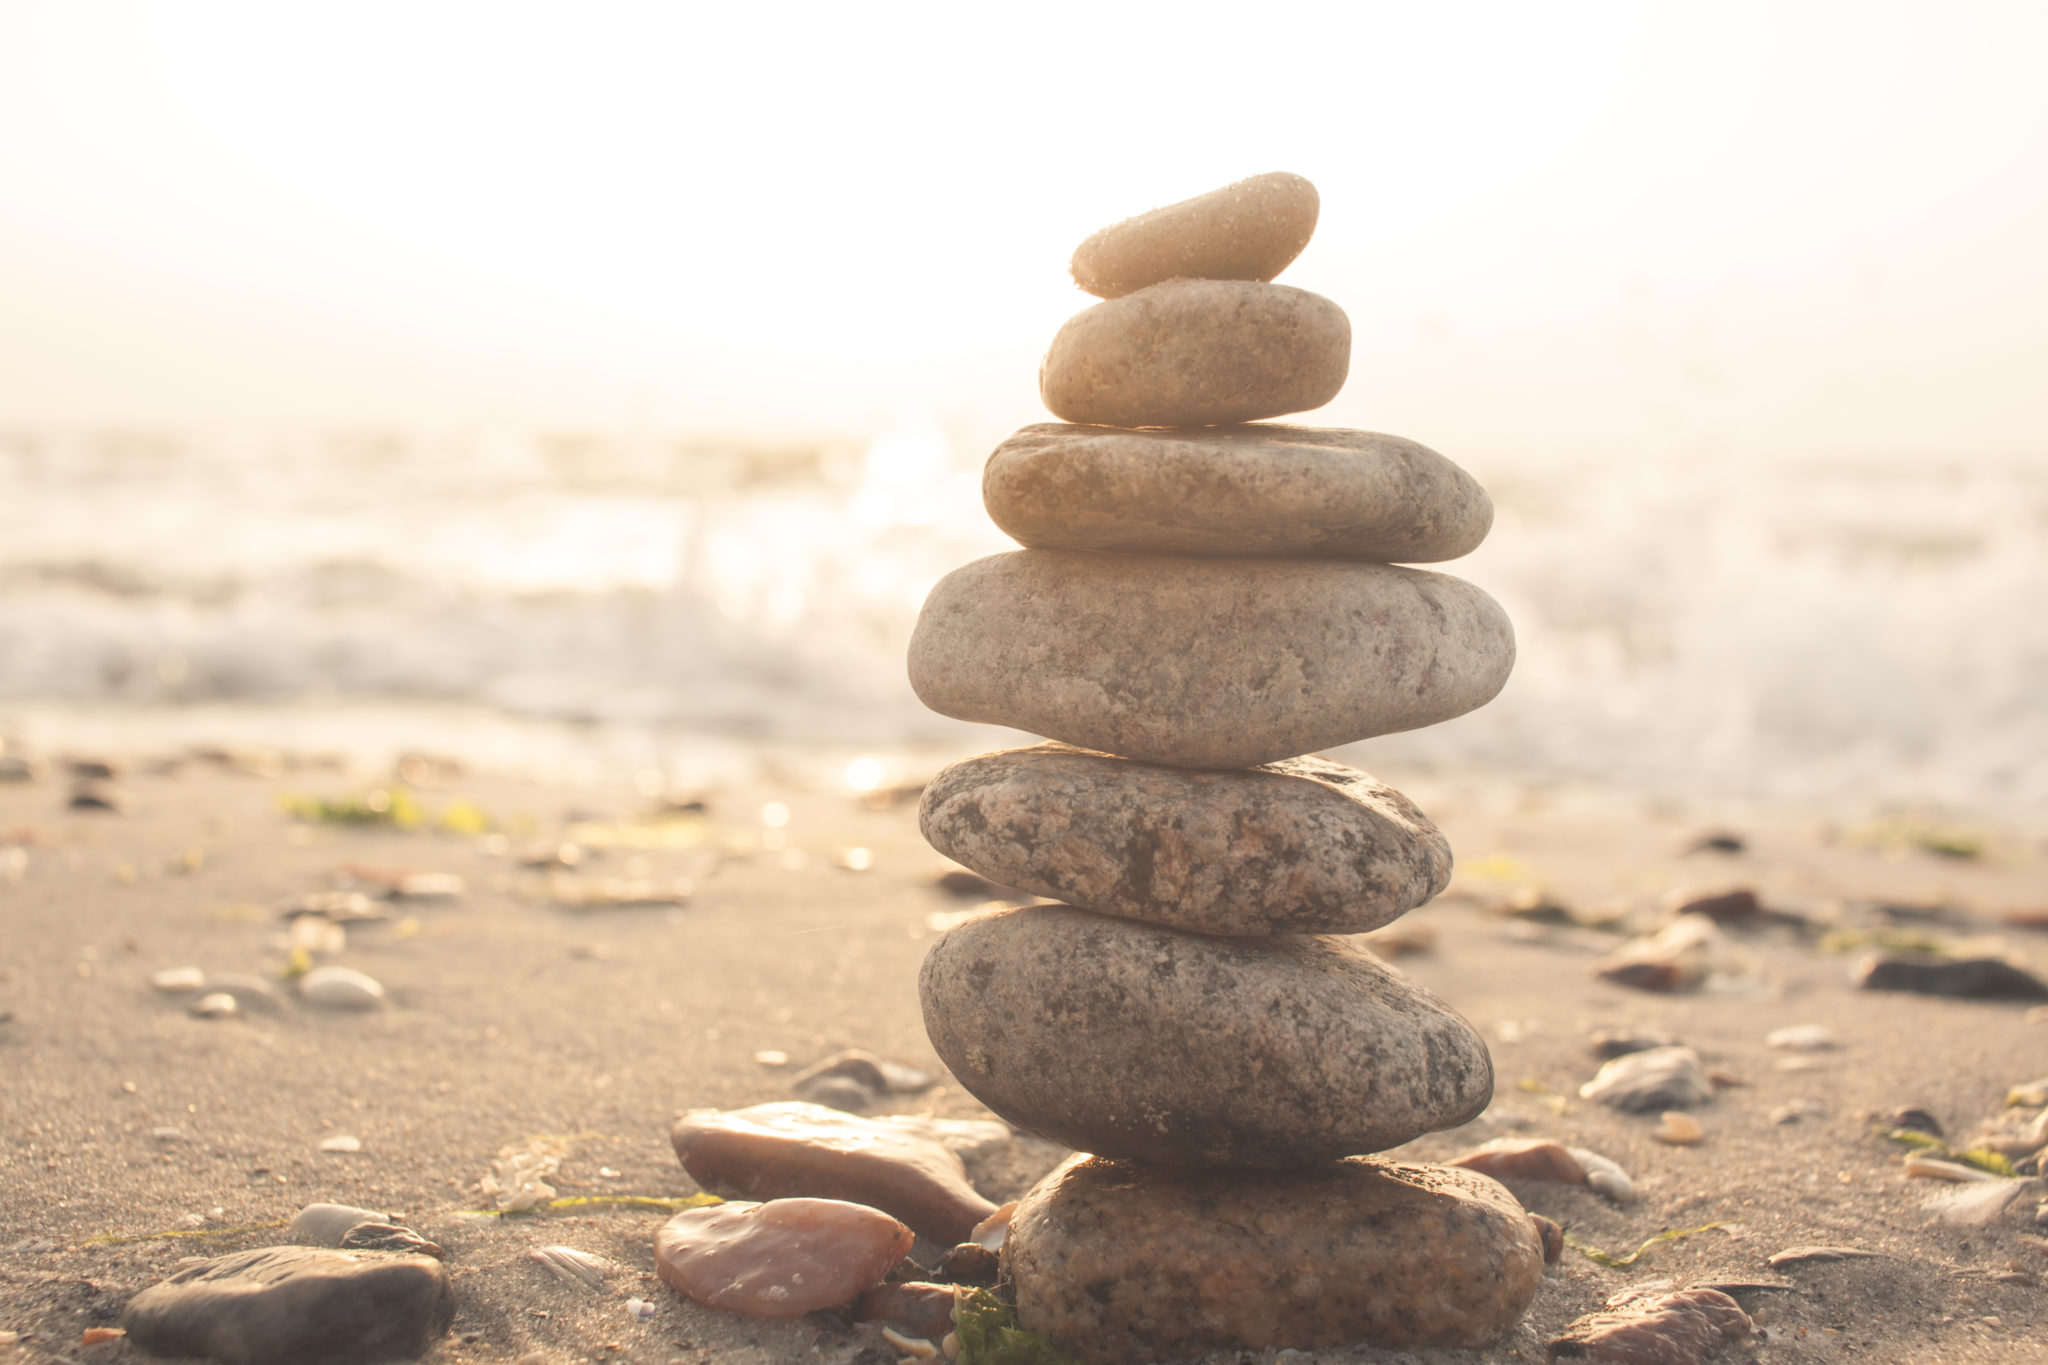 mindfulness meditation is  agreat way to reduce distractions and get more done by focusing your mind